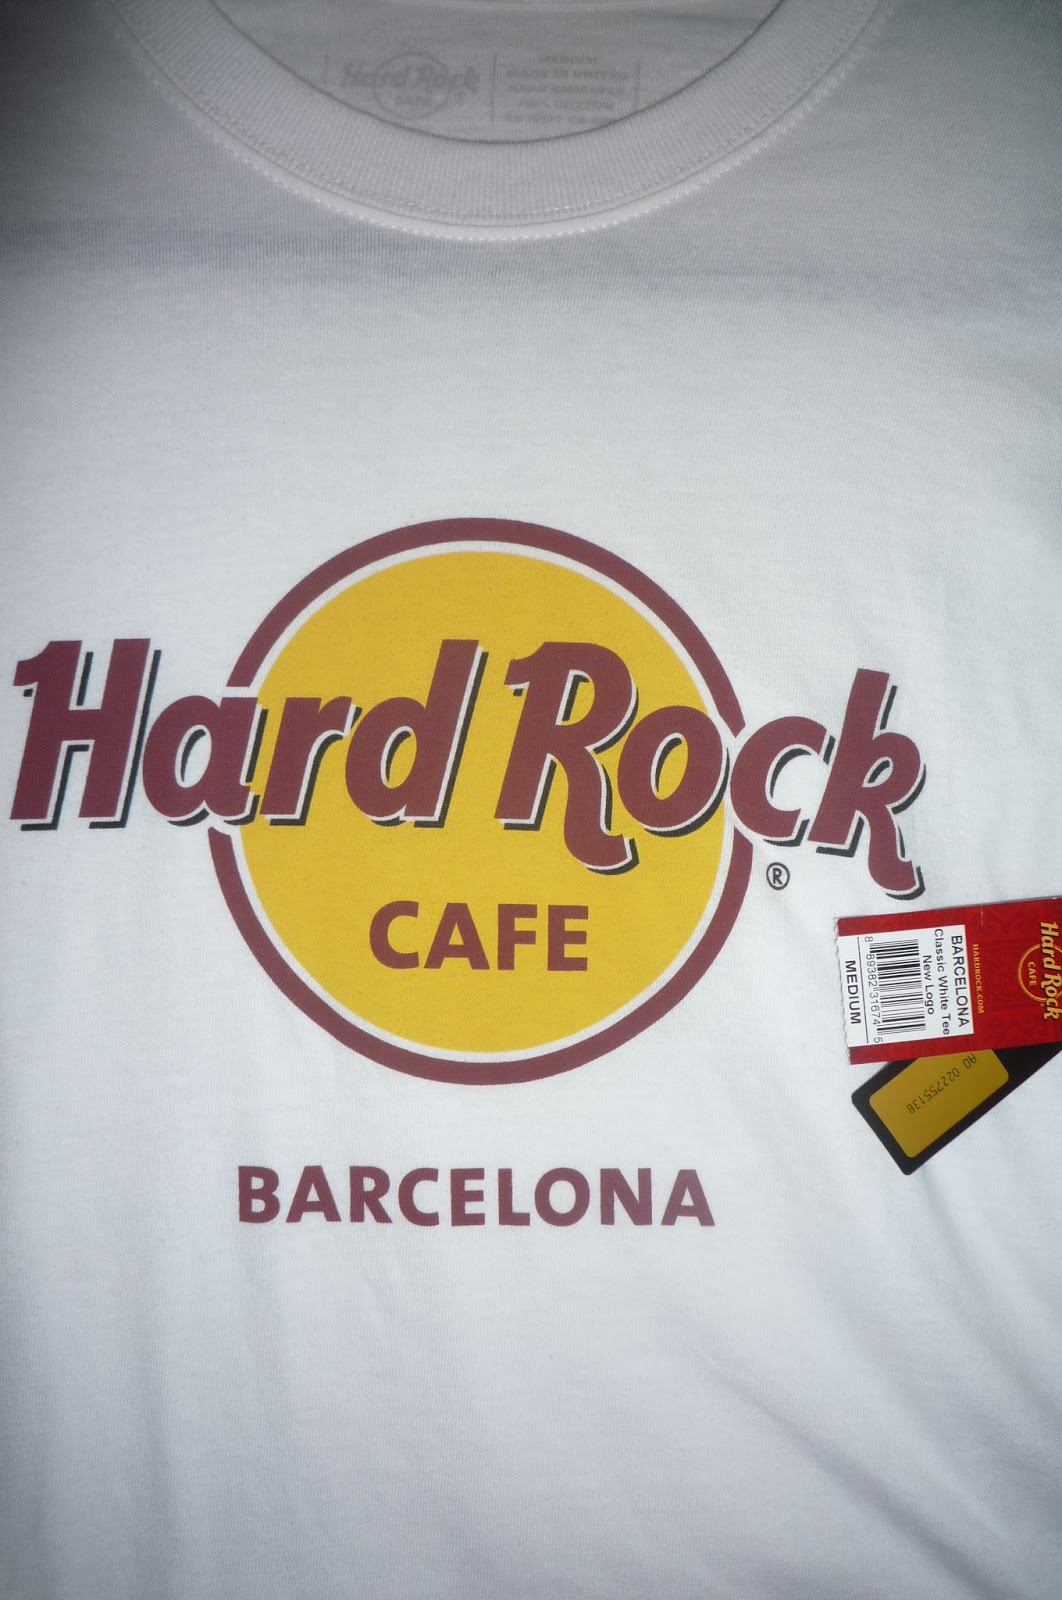 design of goods and services hard rock cafe Design of goods and services 2 managing quality 3 process and capacity  design 4 location strategy 5 layout strategy 6 human resources and job.